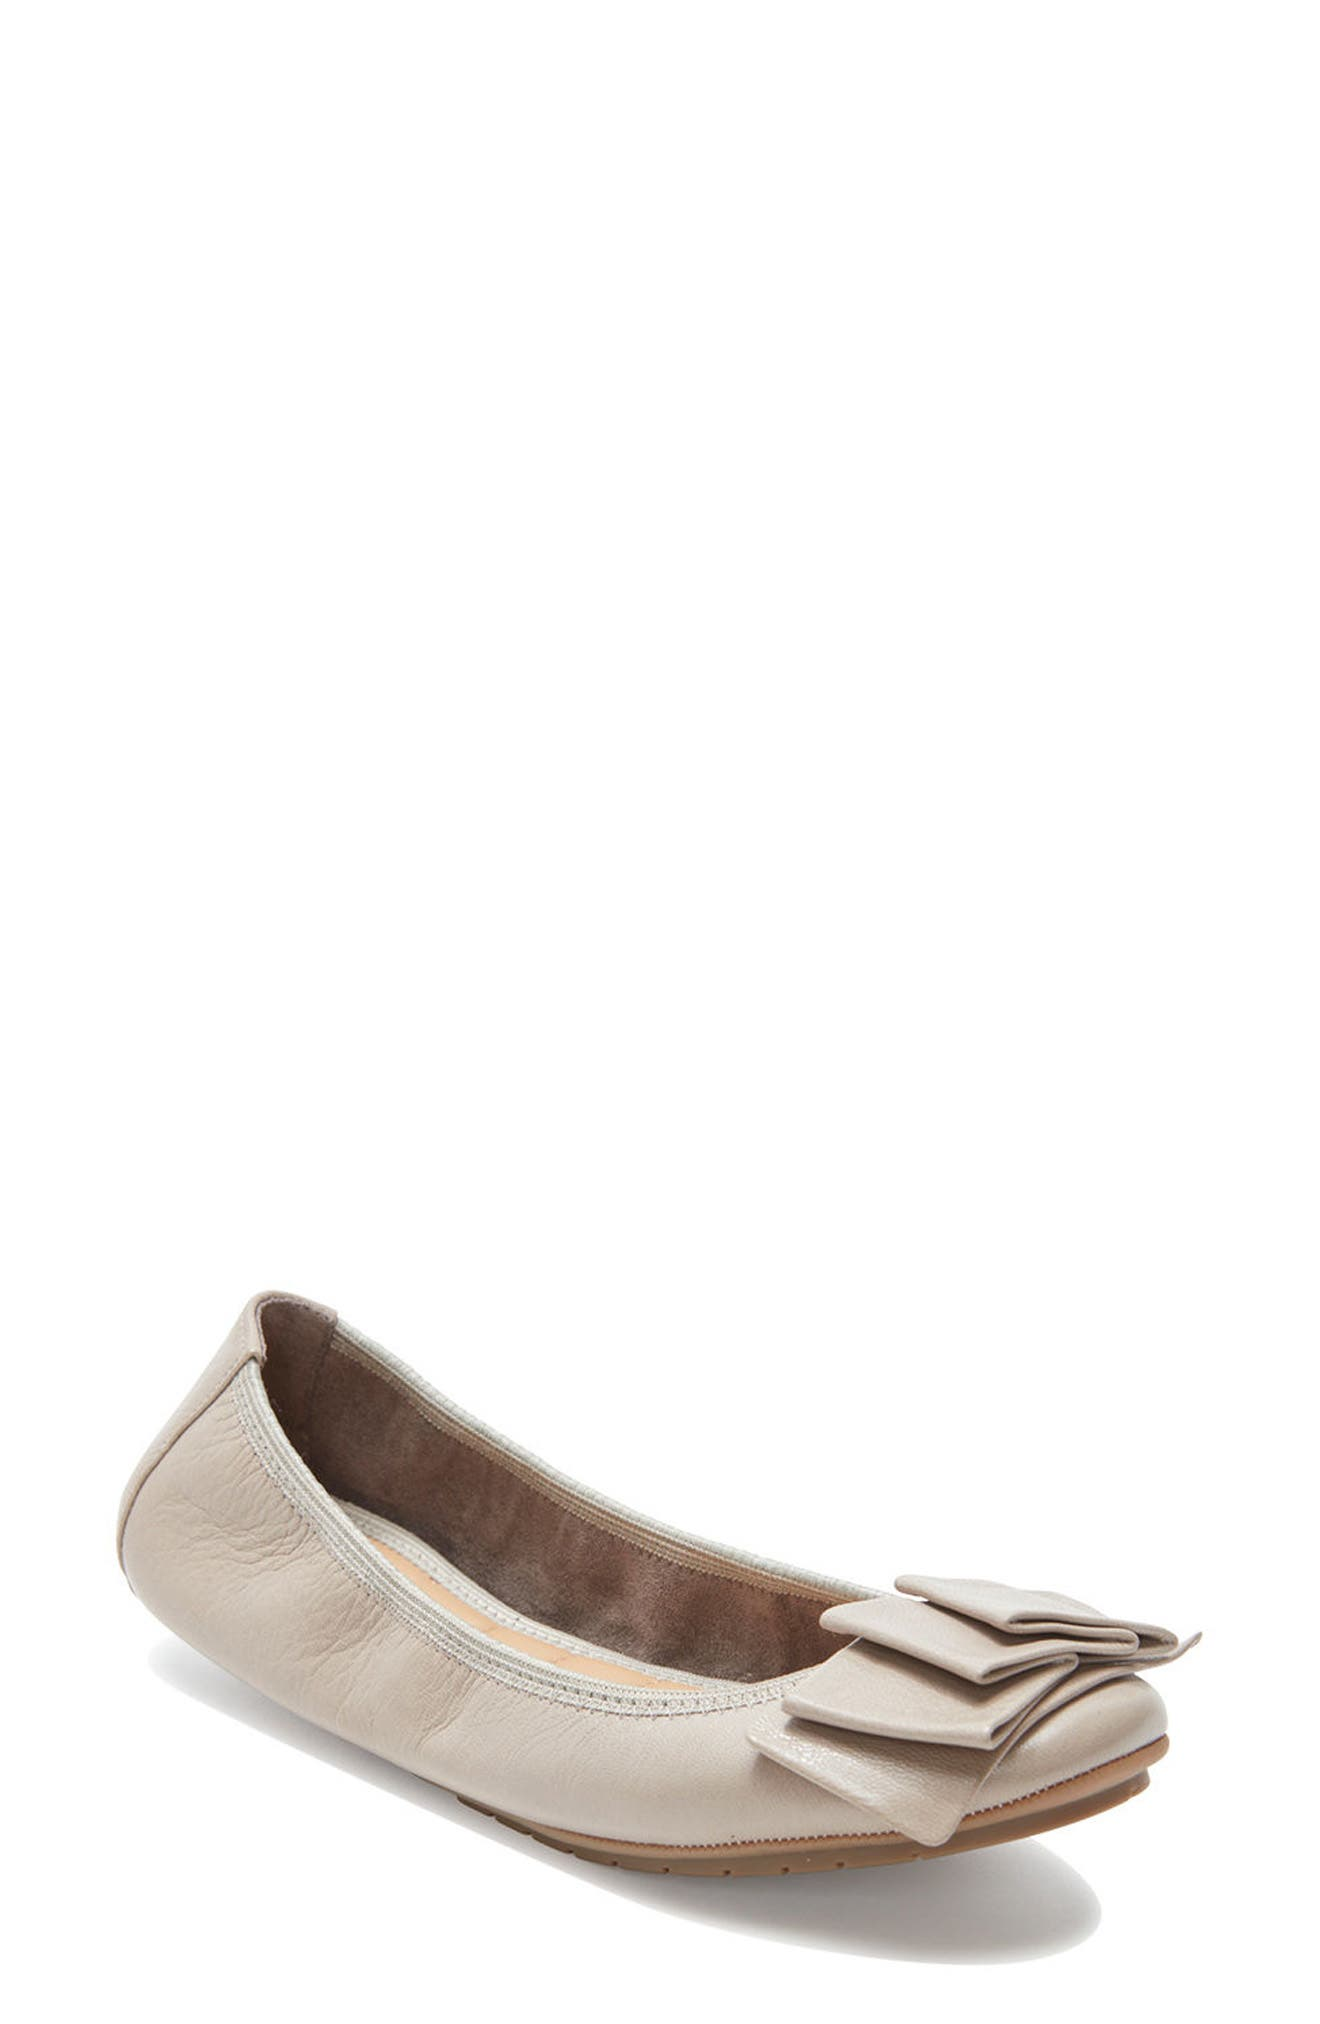 'Lilyana 2.0' Flat,                             Main thumbnail 1, color,                             LIGHT GREY LEATHER